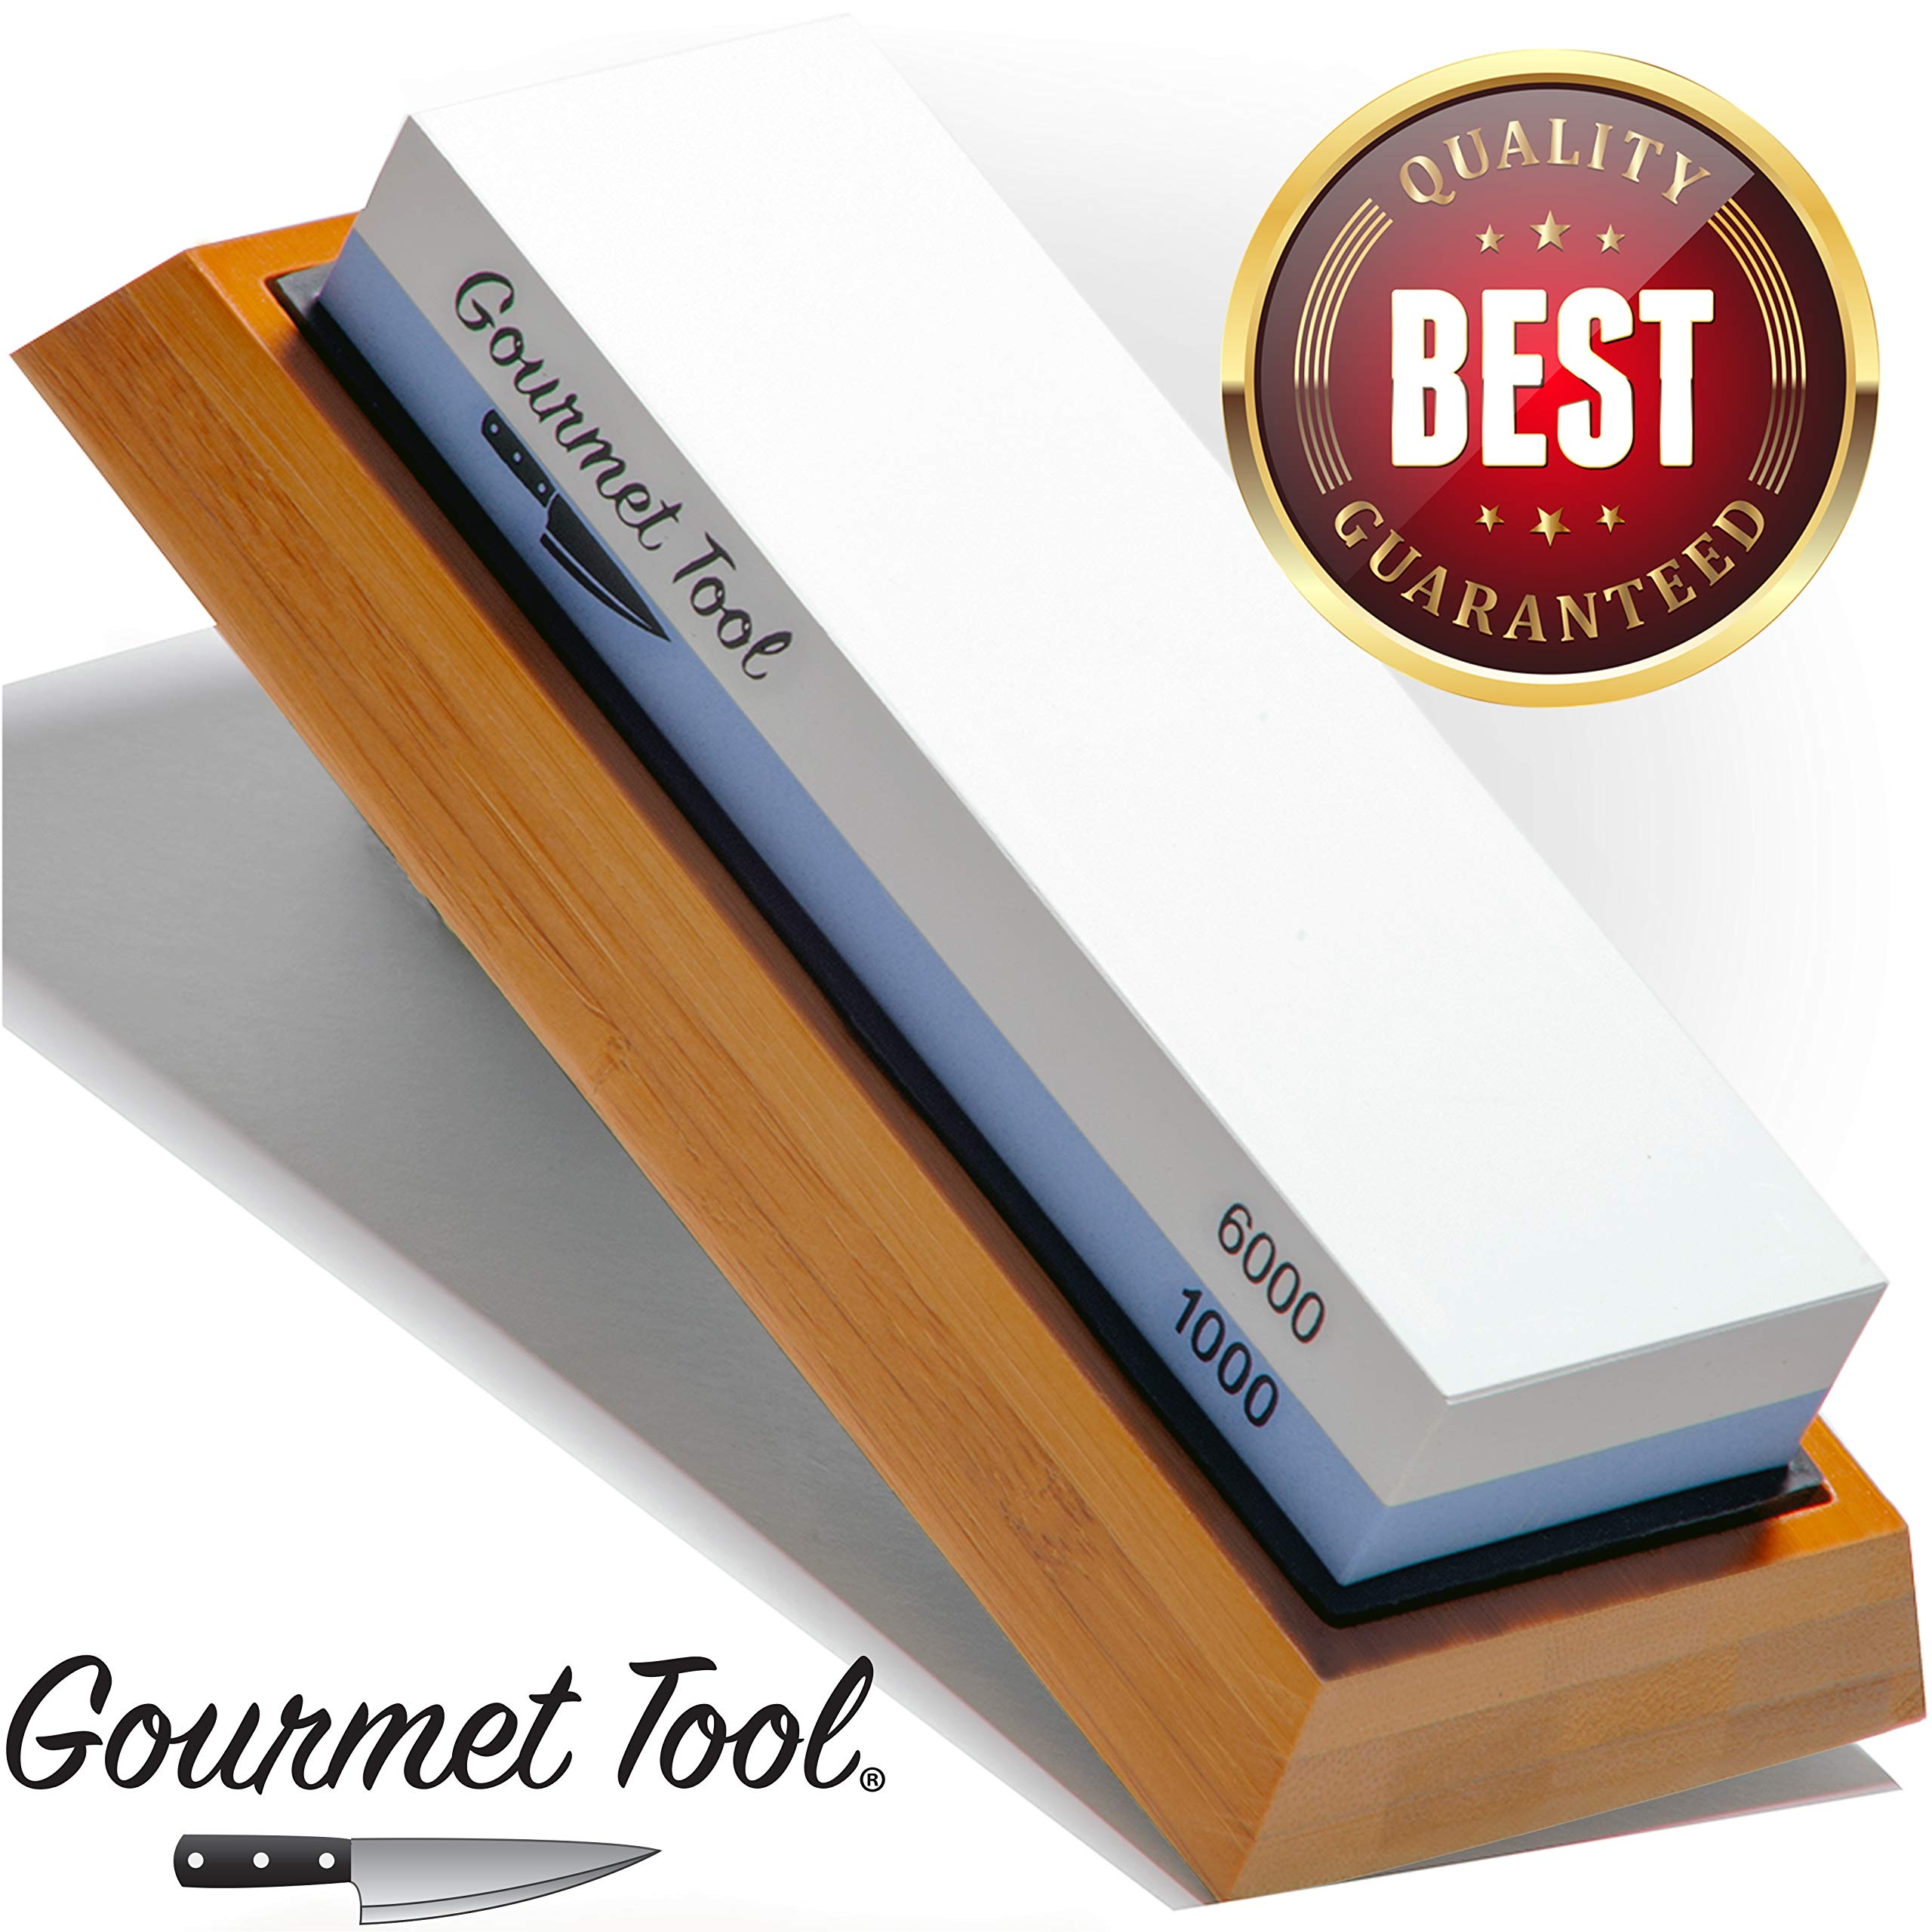 Whetstone Knife Sharpener by Gourmet Tool - Knife Sharpening Stone - Waterstone 1000-6000 Grit with Non-Slip Bamboo Base Flattening Stone and Angle Guide - Best Wet Stone Kitchen Knives Sharpening Kit by Gourmet Tool